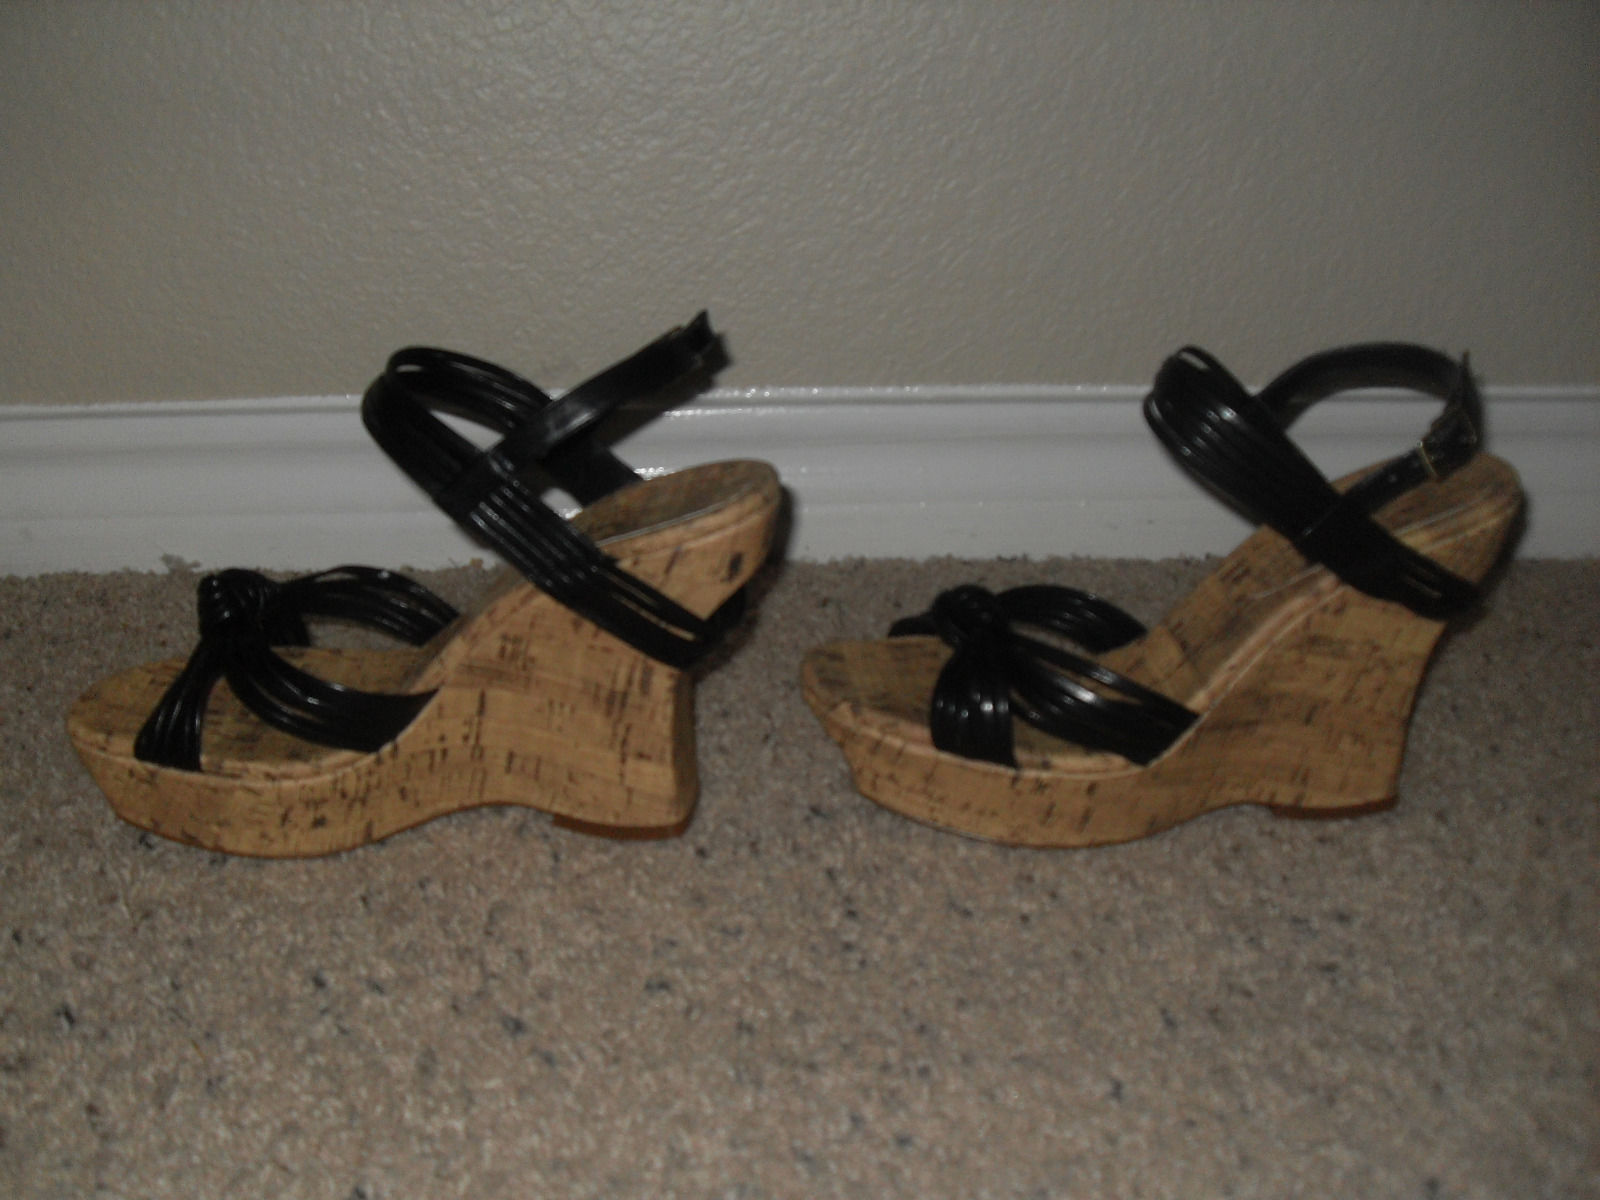 Primary image for Jessica Simpson New Sexy Black Strappy Wedge Heels Sandals Medium (B,M) 10B/40